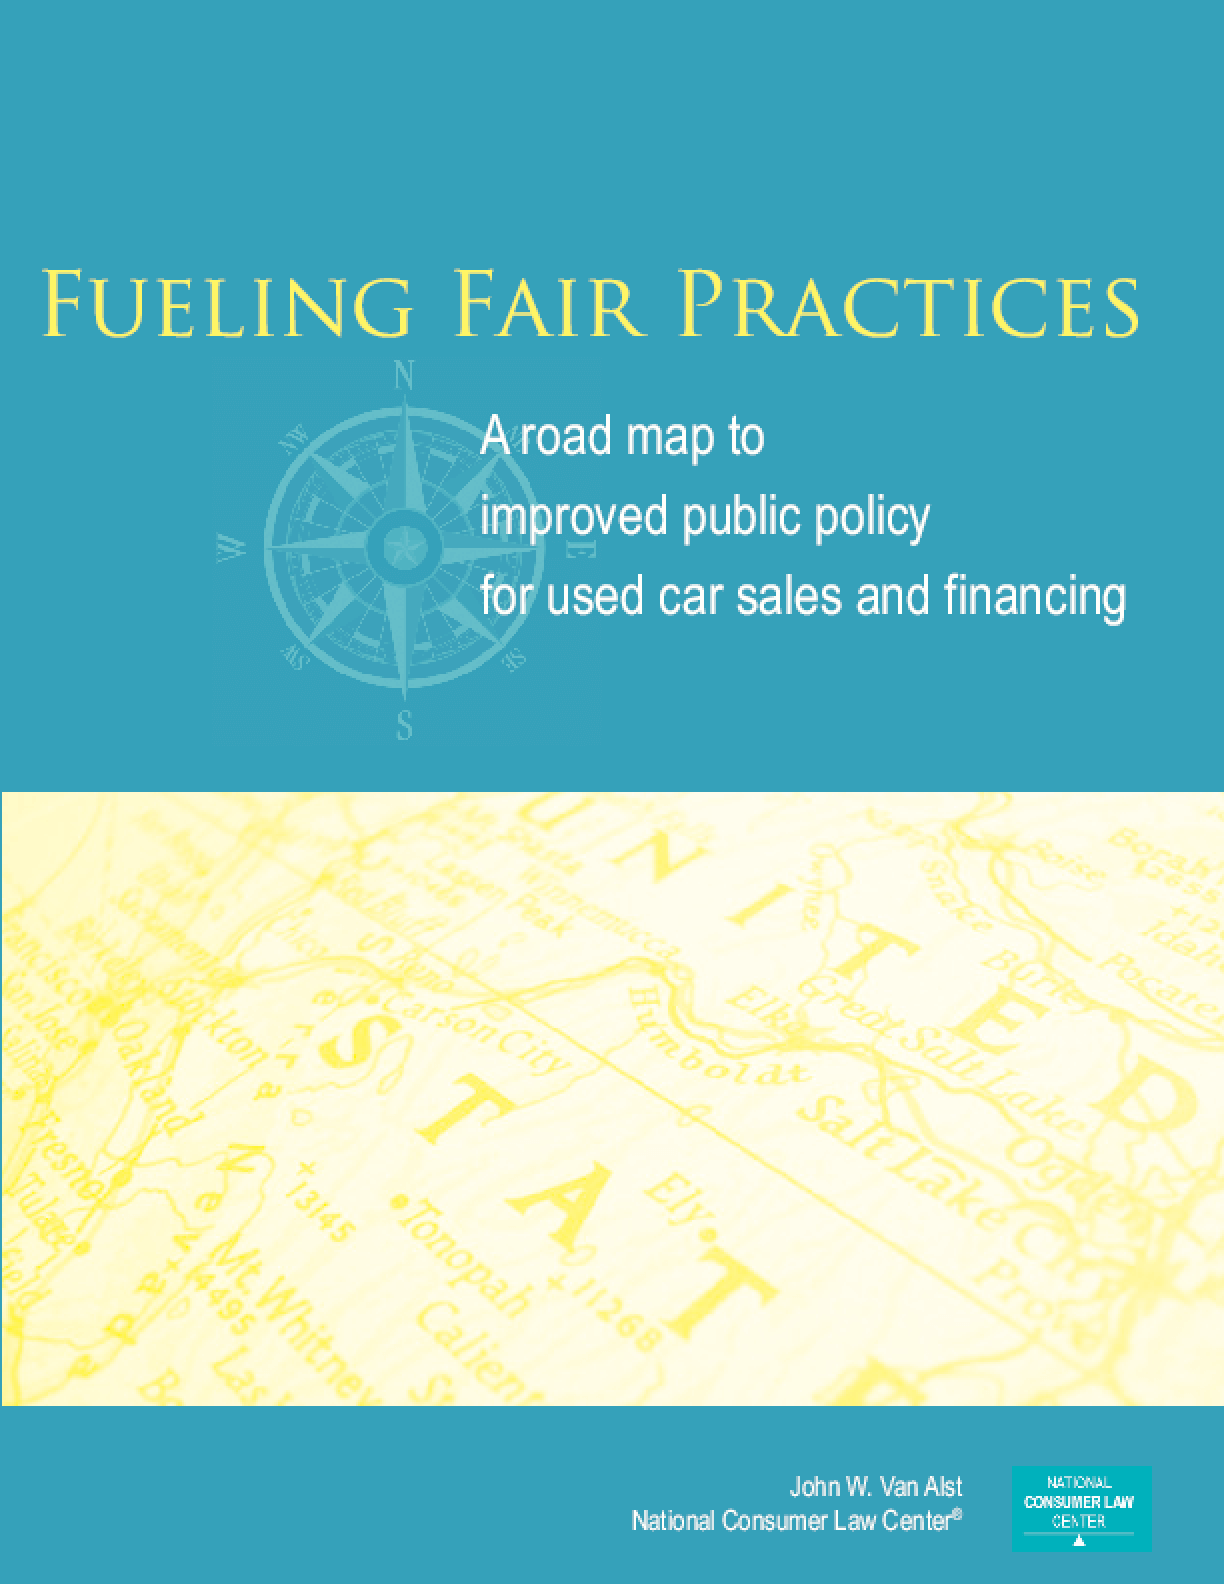 Fueling Fair Practices: A Road Map to Improved Public Policy for Used Car Sales and Financing